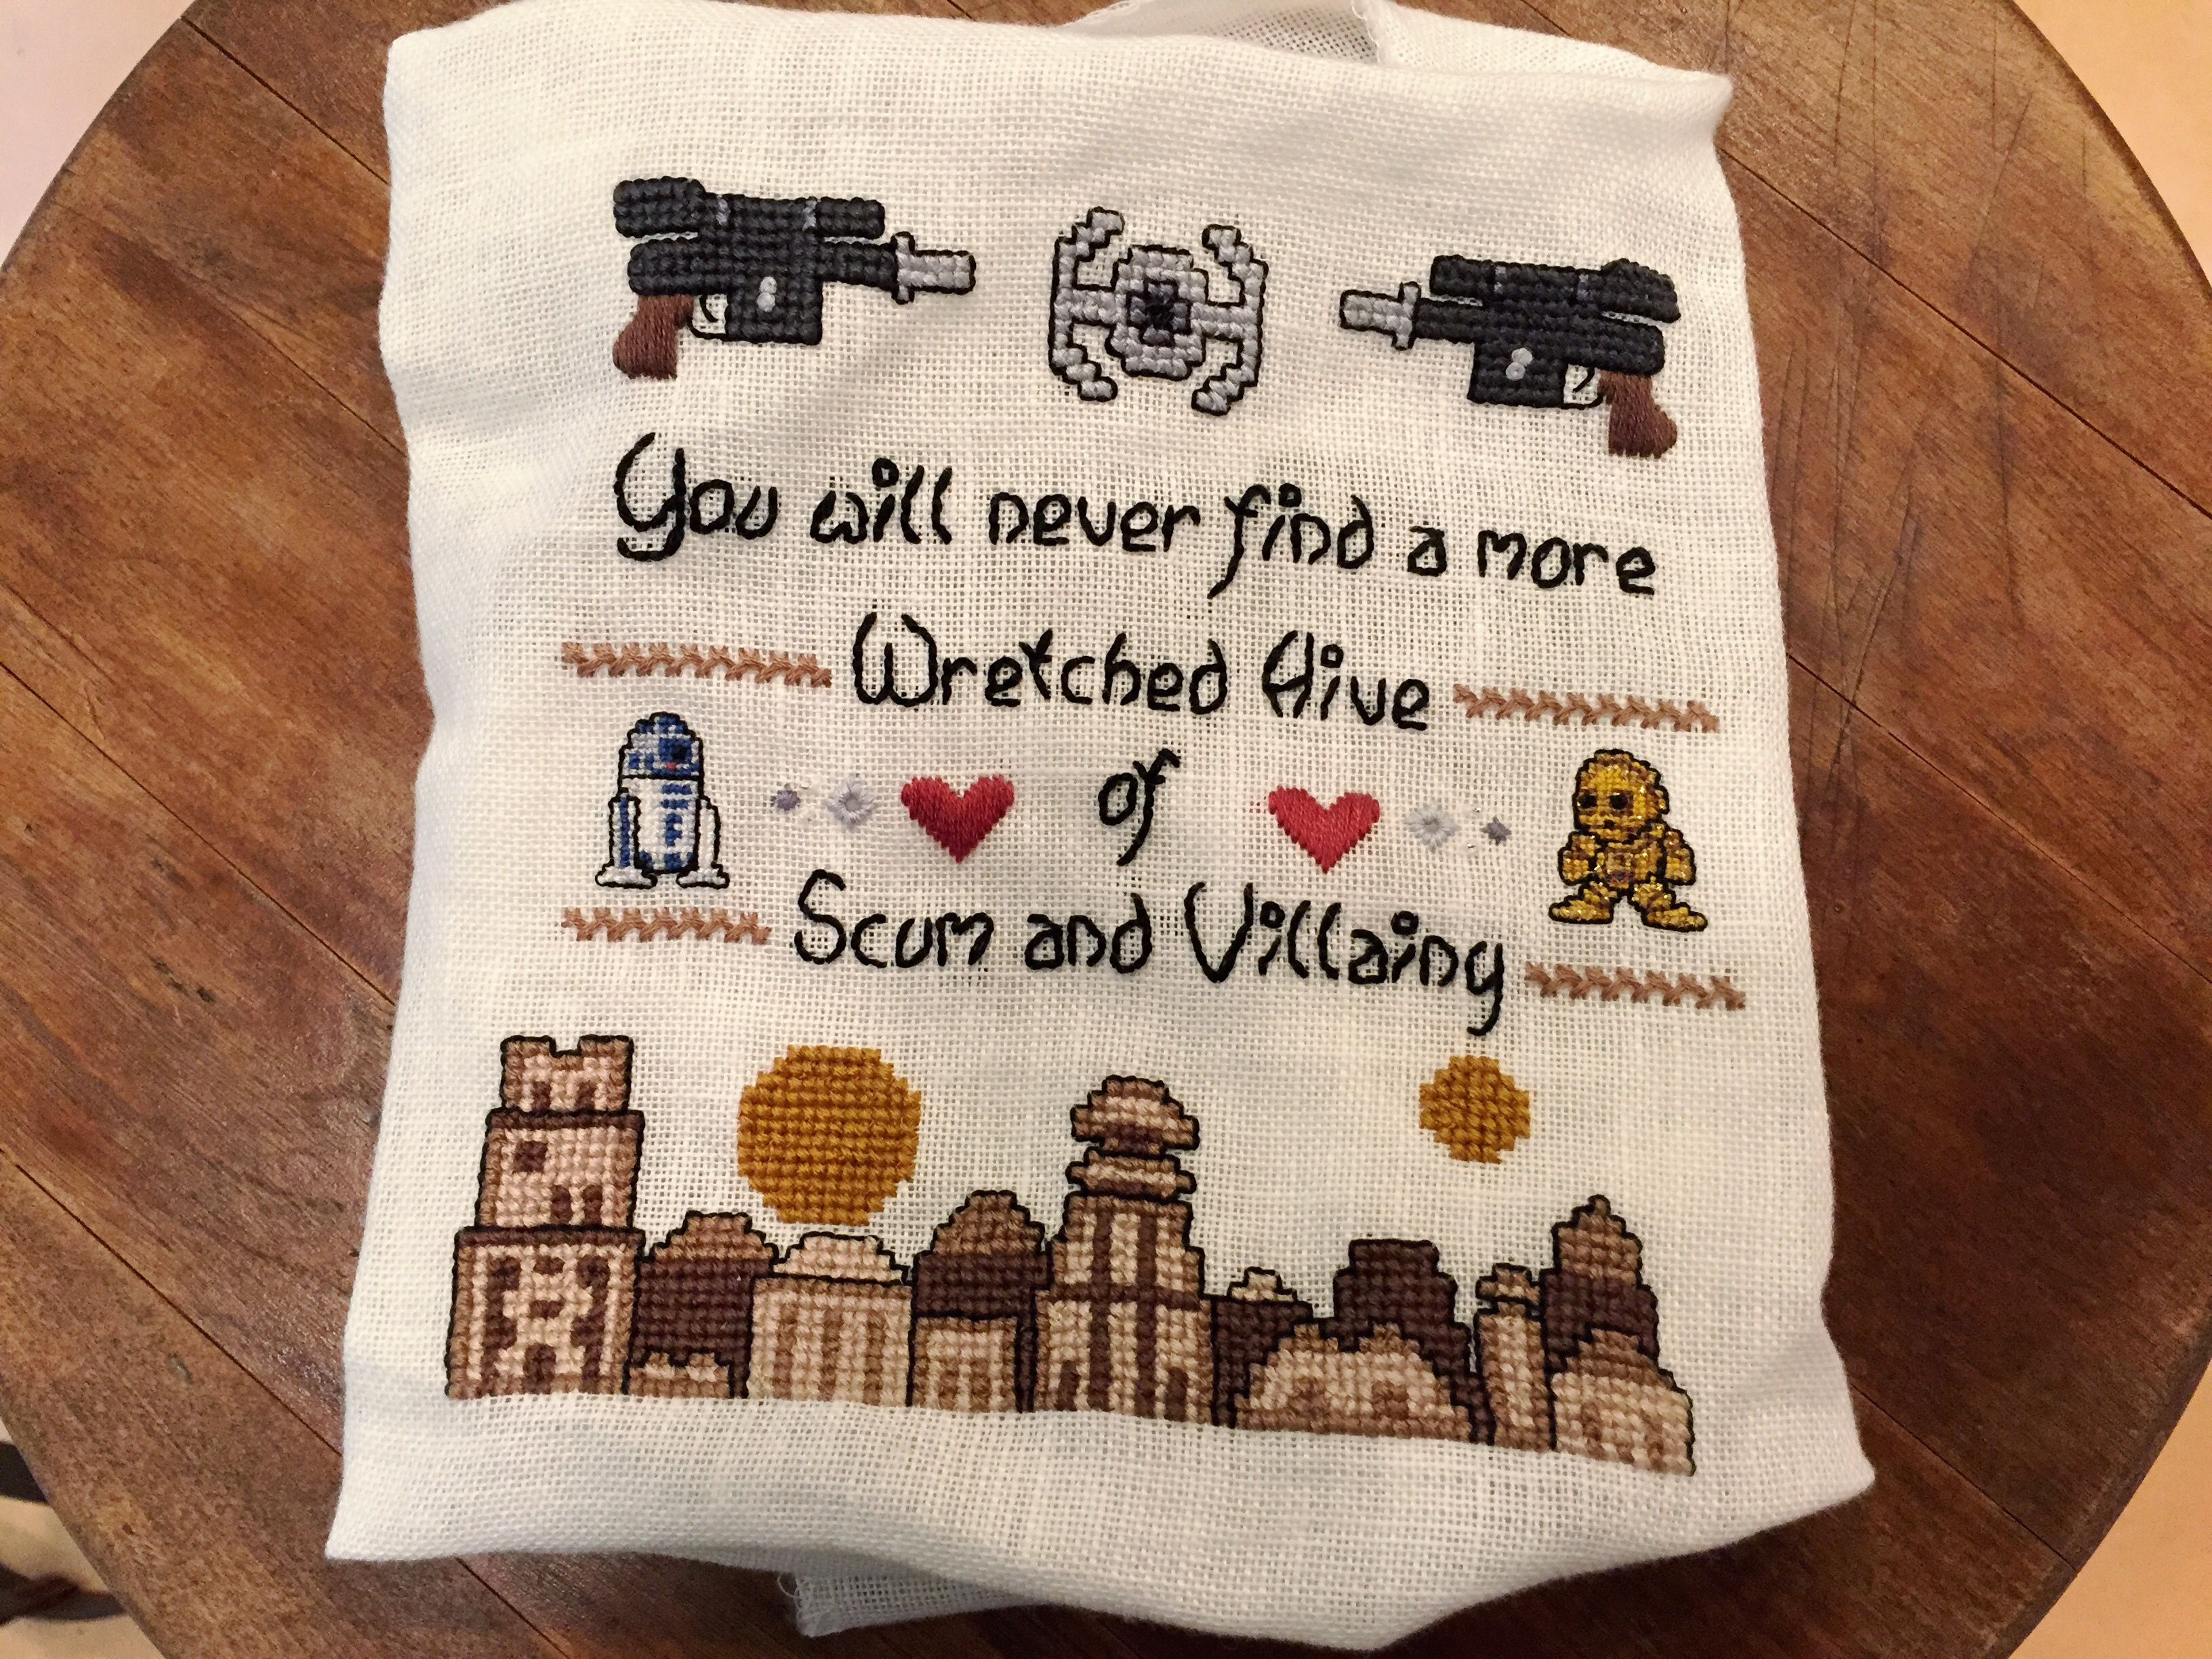 Star Wars Embroidery Pattern Star Wars Crafts Episode I My Mos Eisley Cross Stitch Sampler